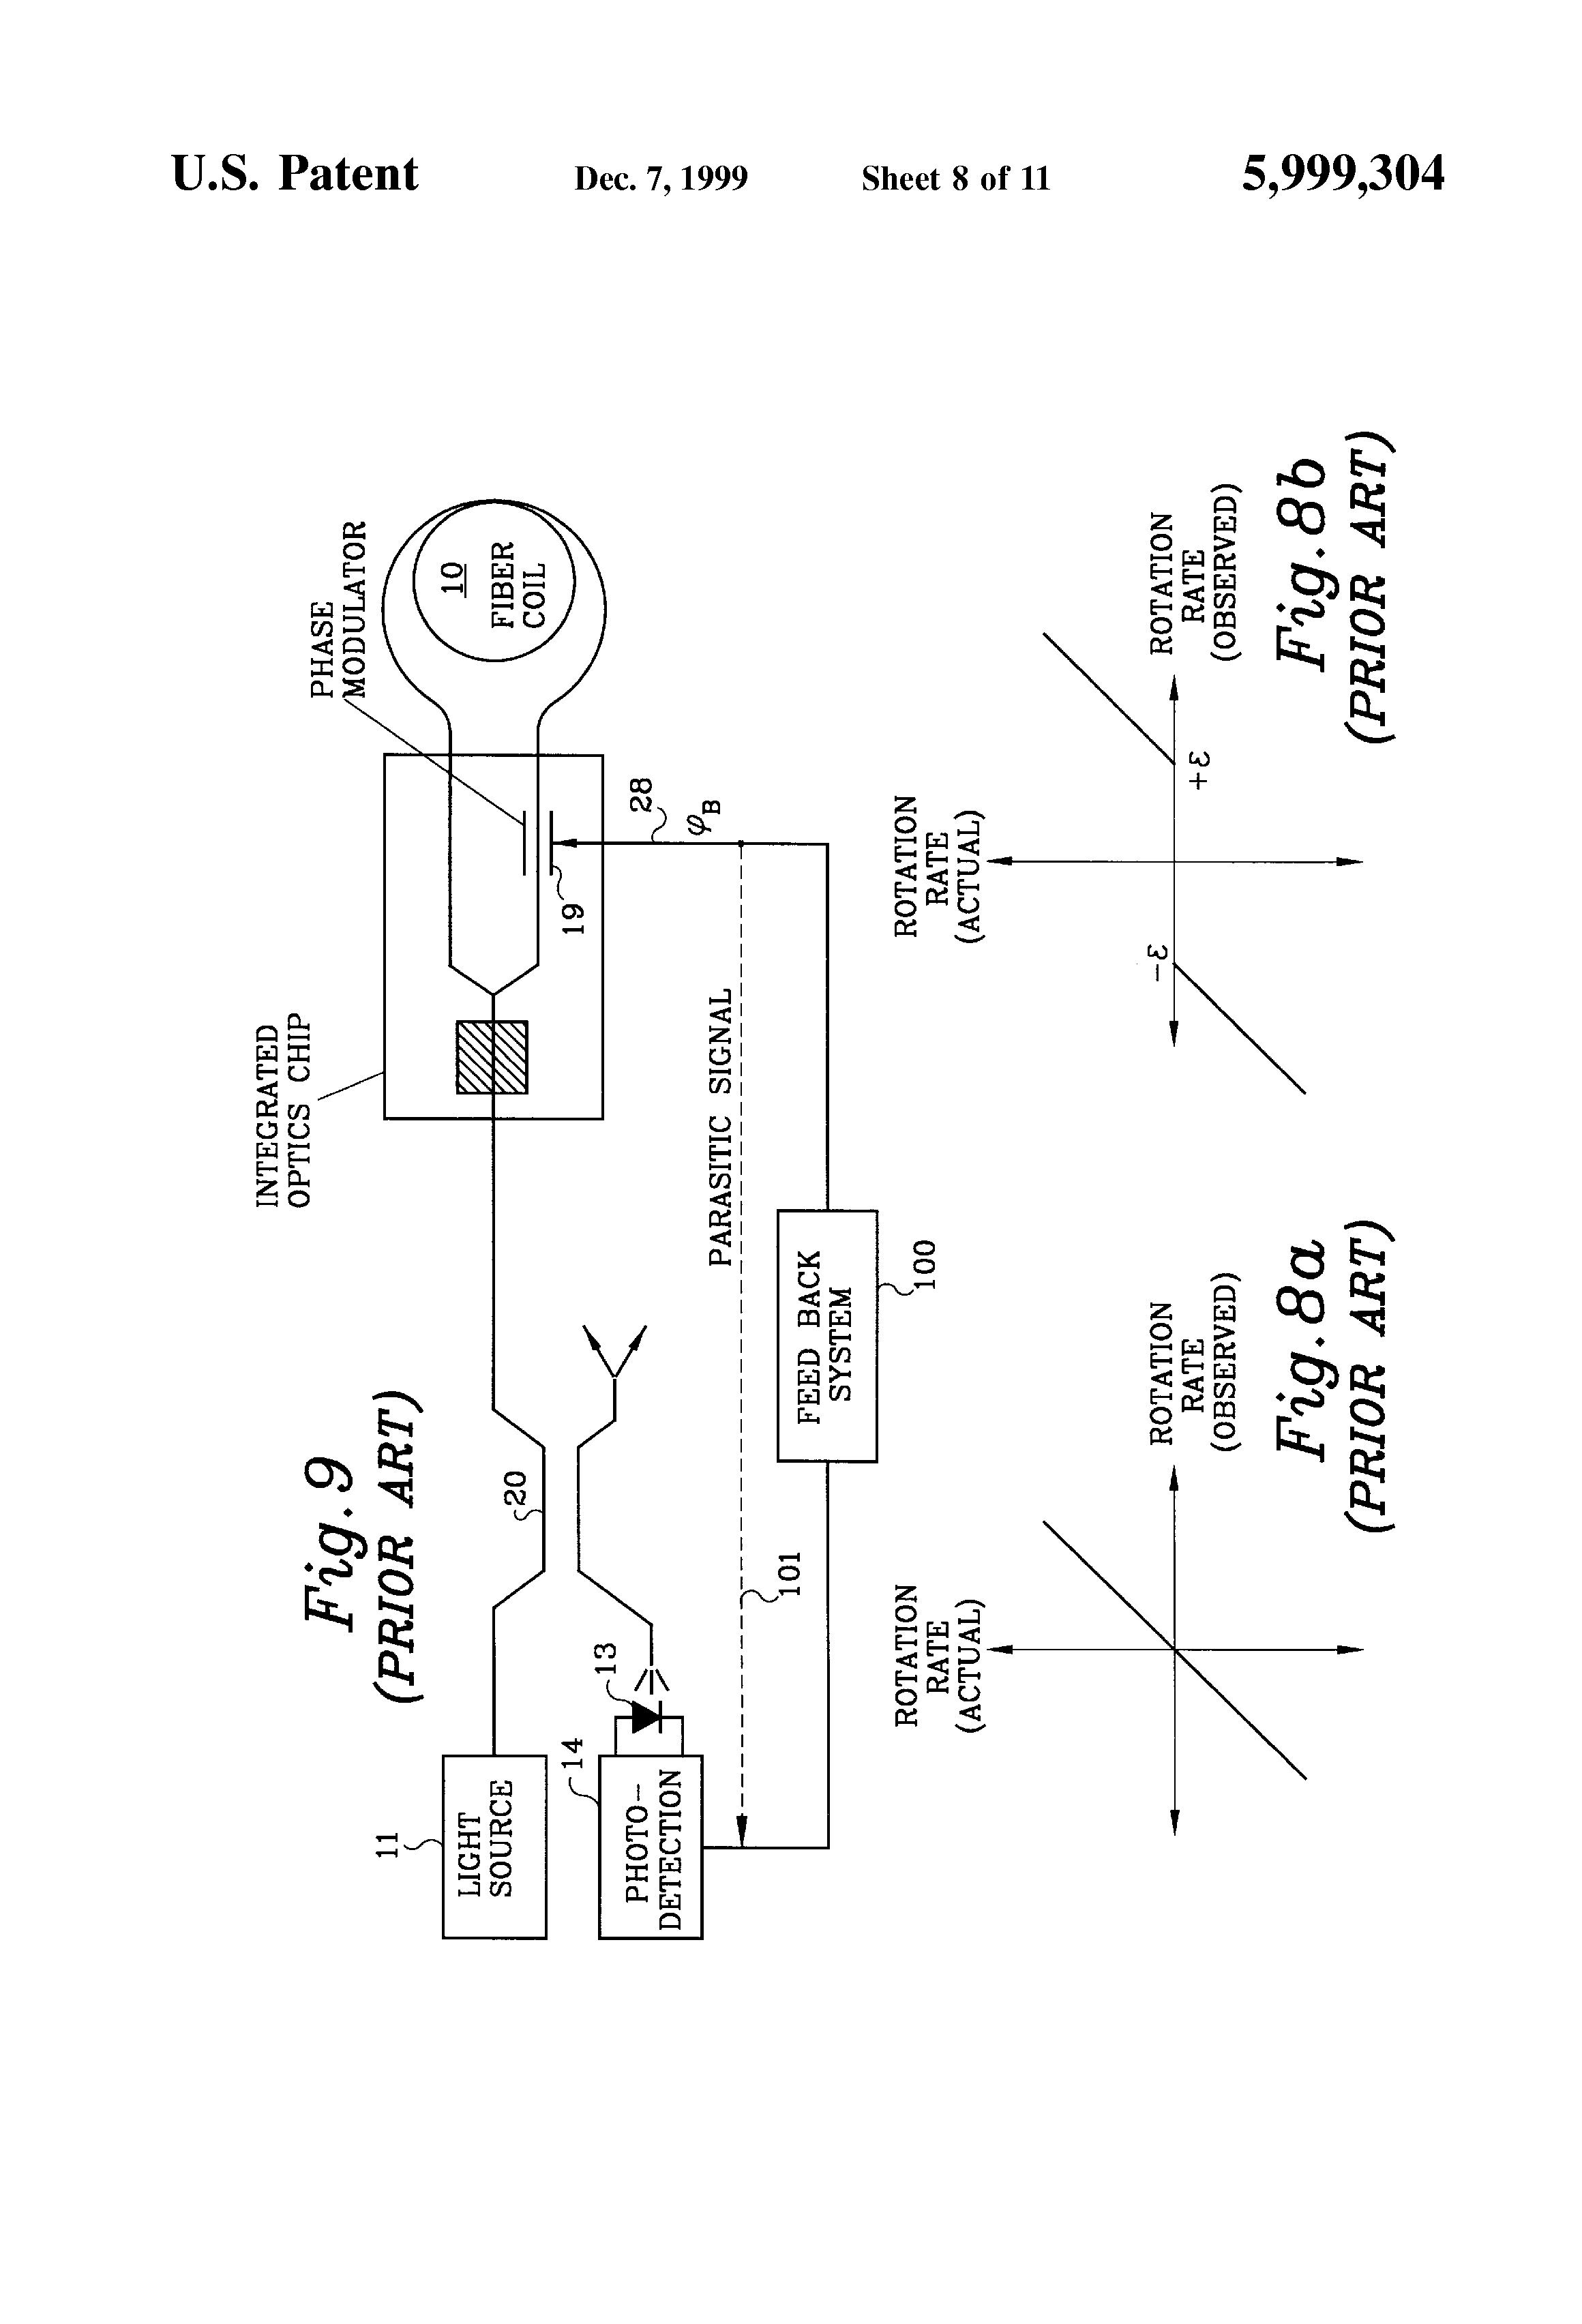 Linear Ramp Generator Circuit Search For Wiring Diagrams 555 Timer Patent Us5999304 Fiber Optic Gyroscope With Deadband Using Ic